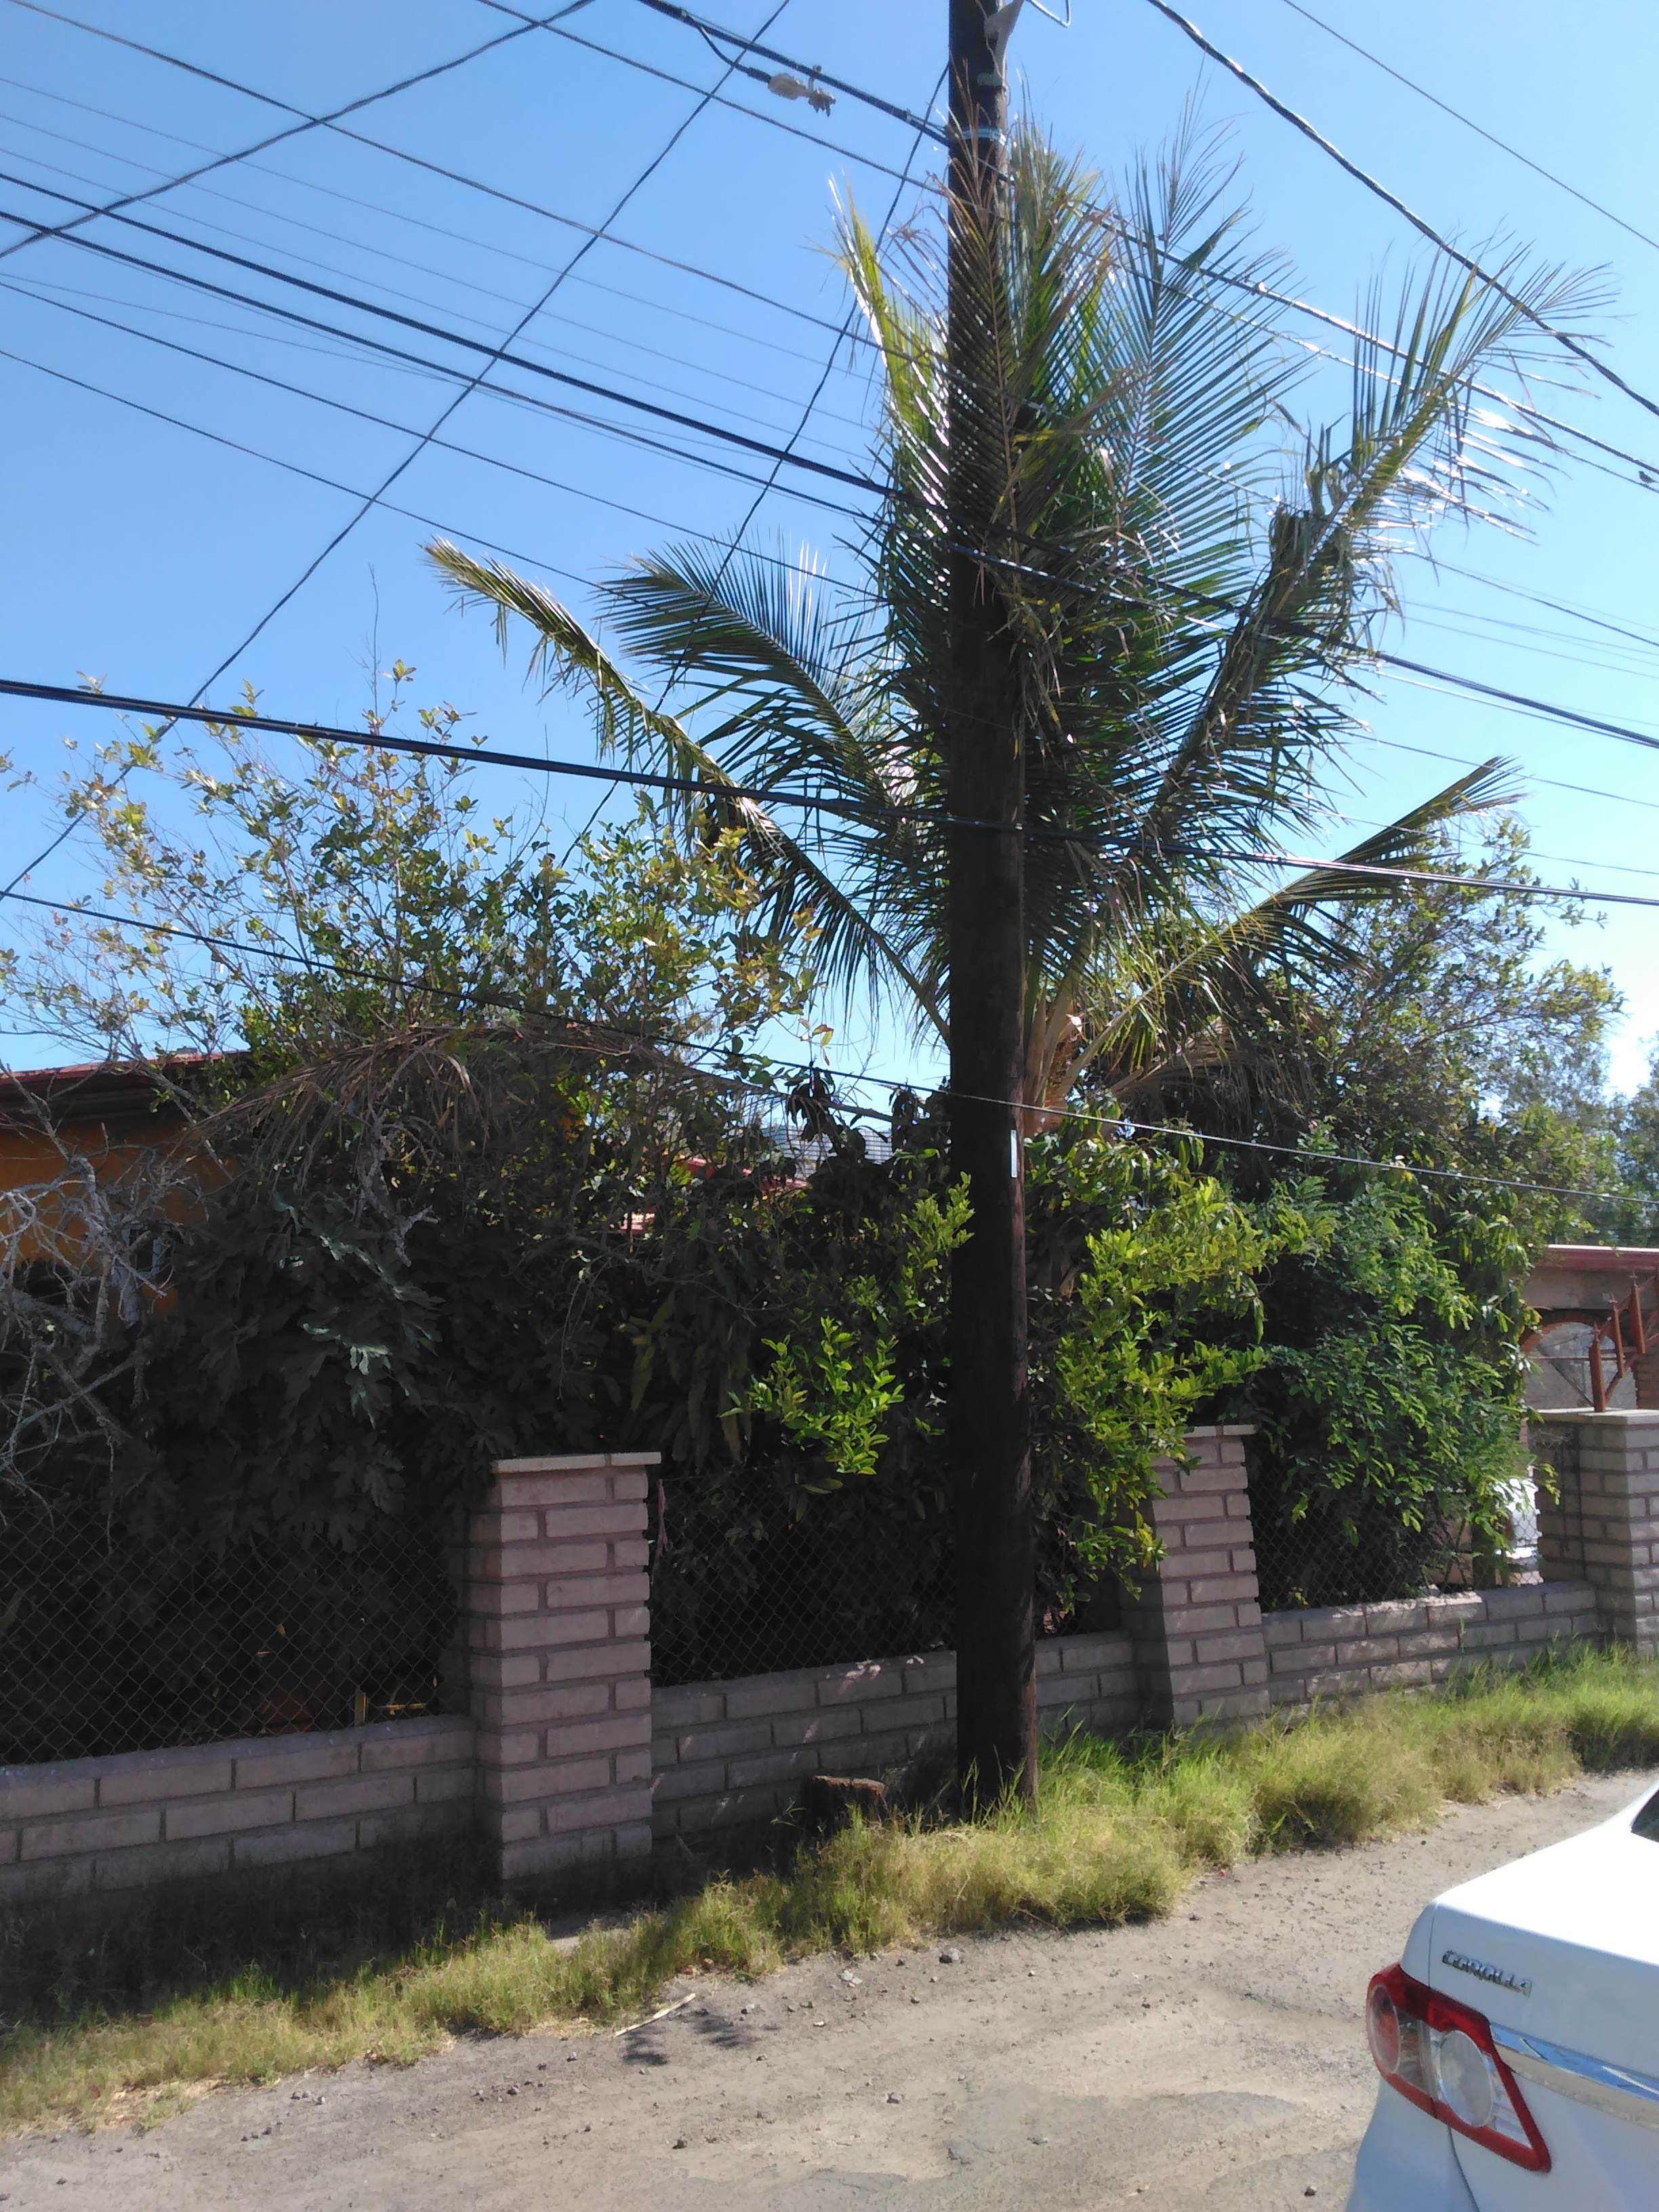 Coconut Palm In Mexicali Baja California Discussing